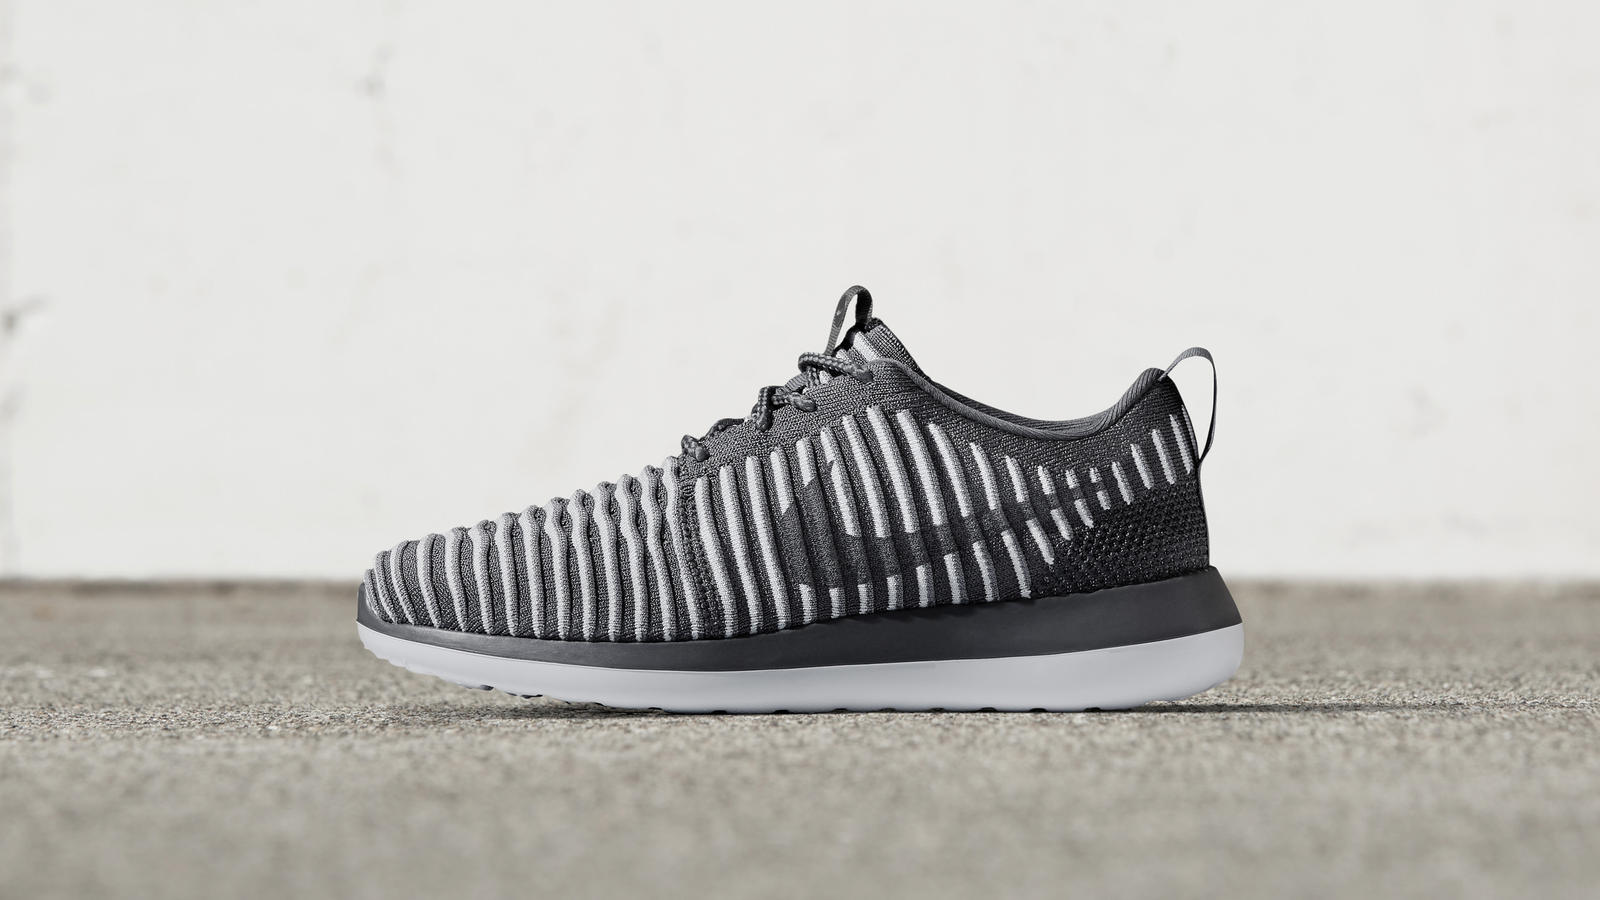 NIKE_NEWS_SNEAKER_FEED_ROSHE_2_3081_hd_1600